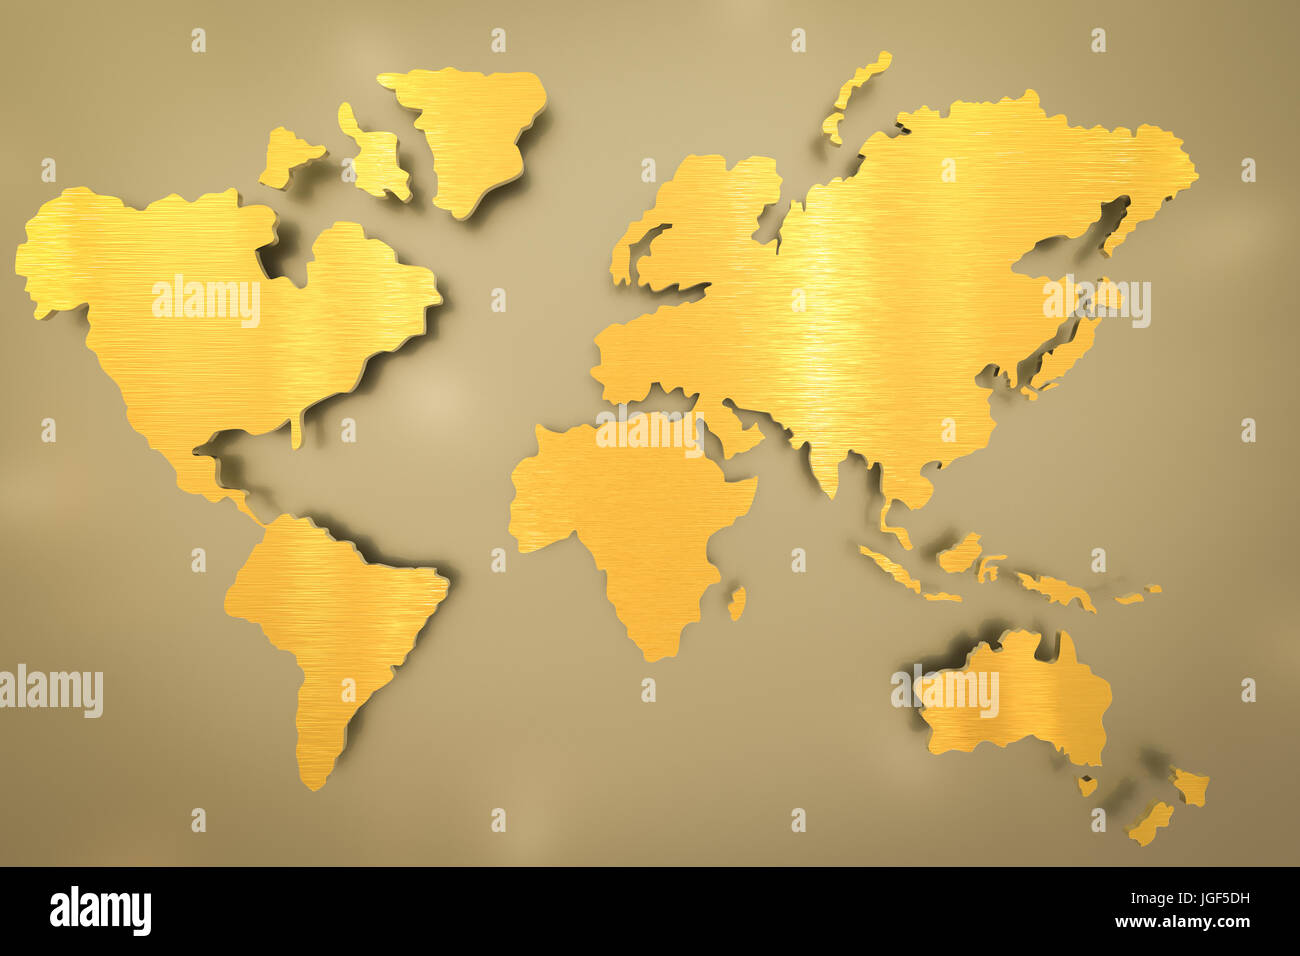 3d rendering golden world map on gold background stock photo 3d rendering golden world map on gold background gumiabroncs Images